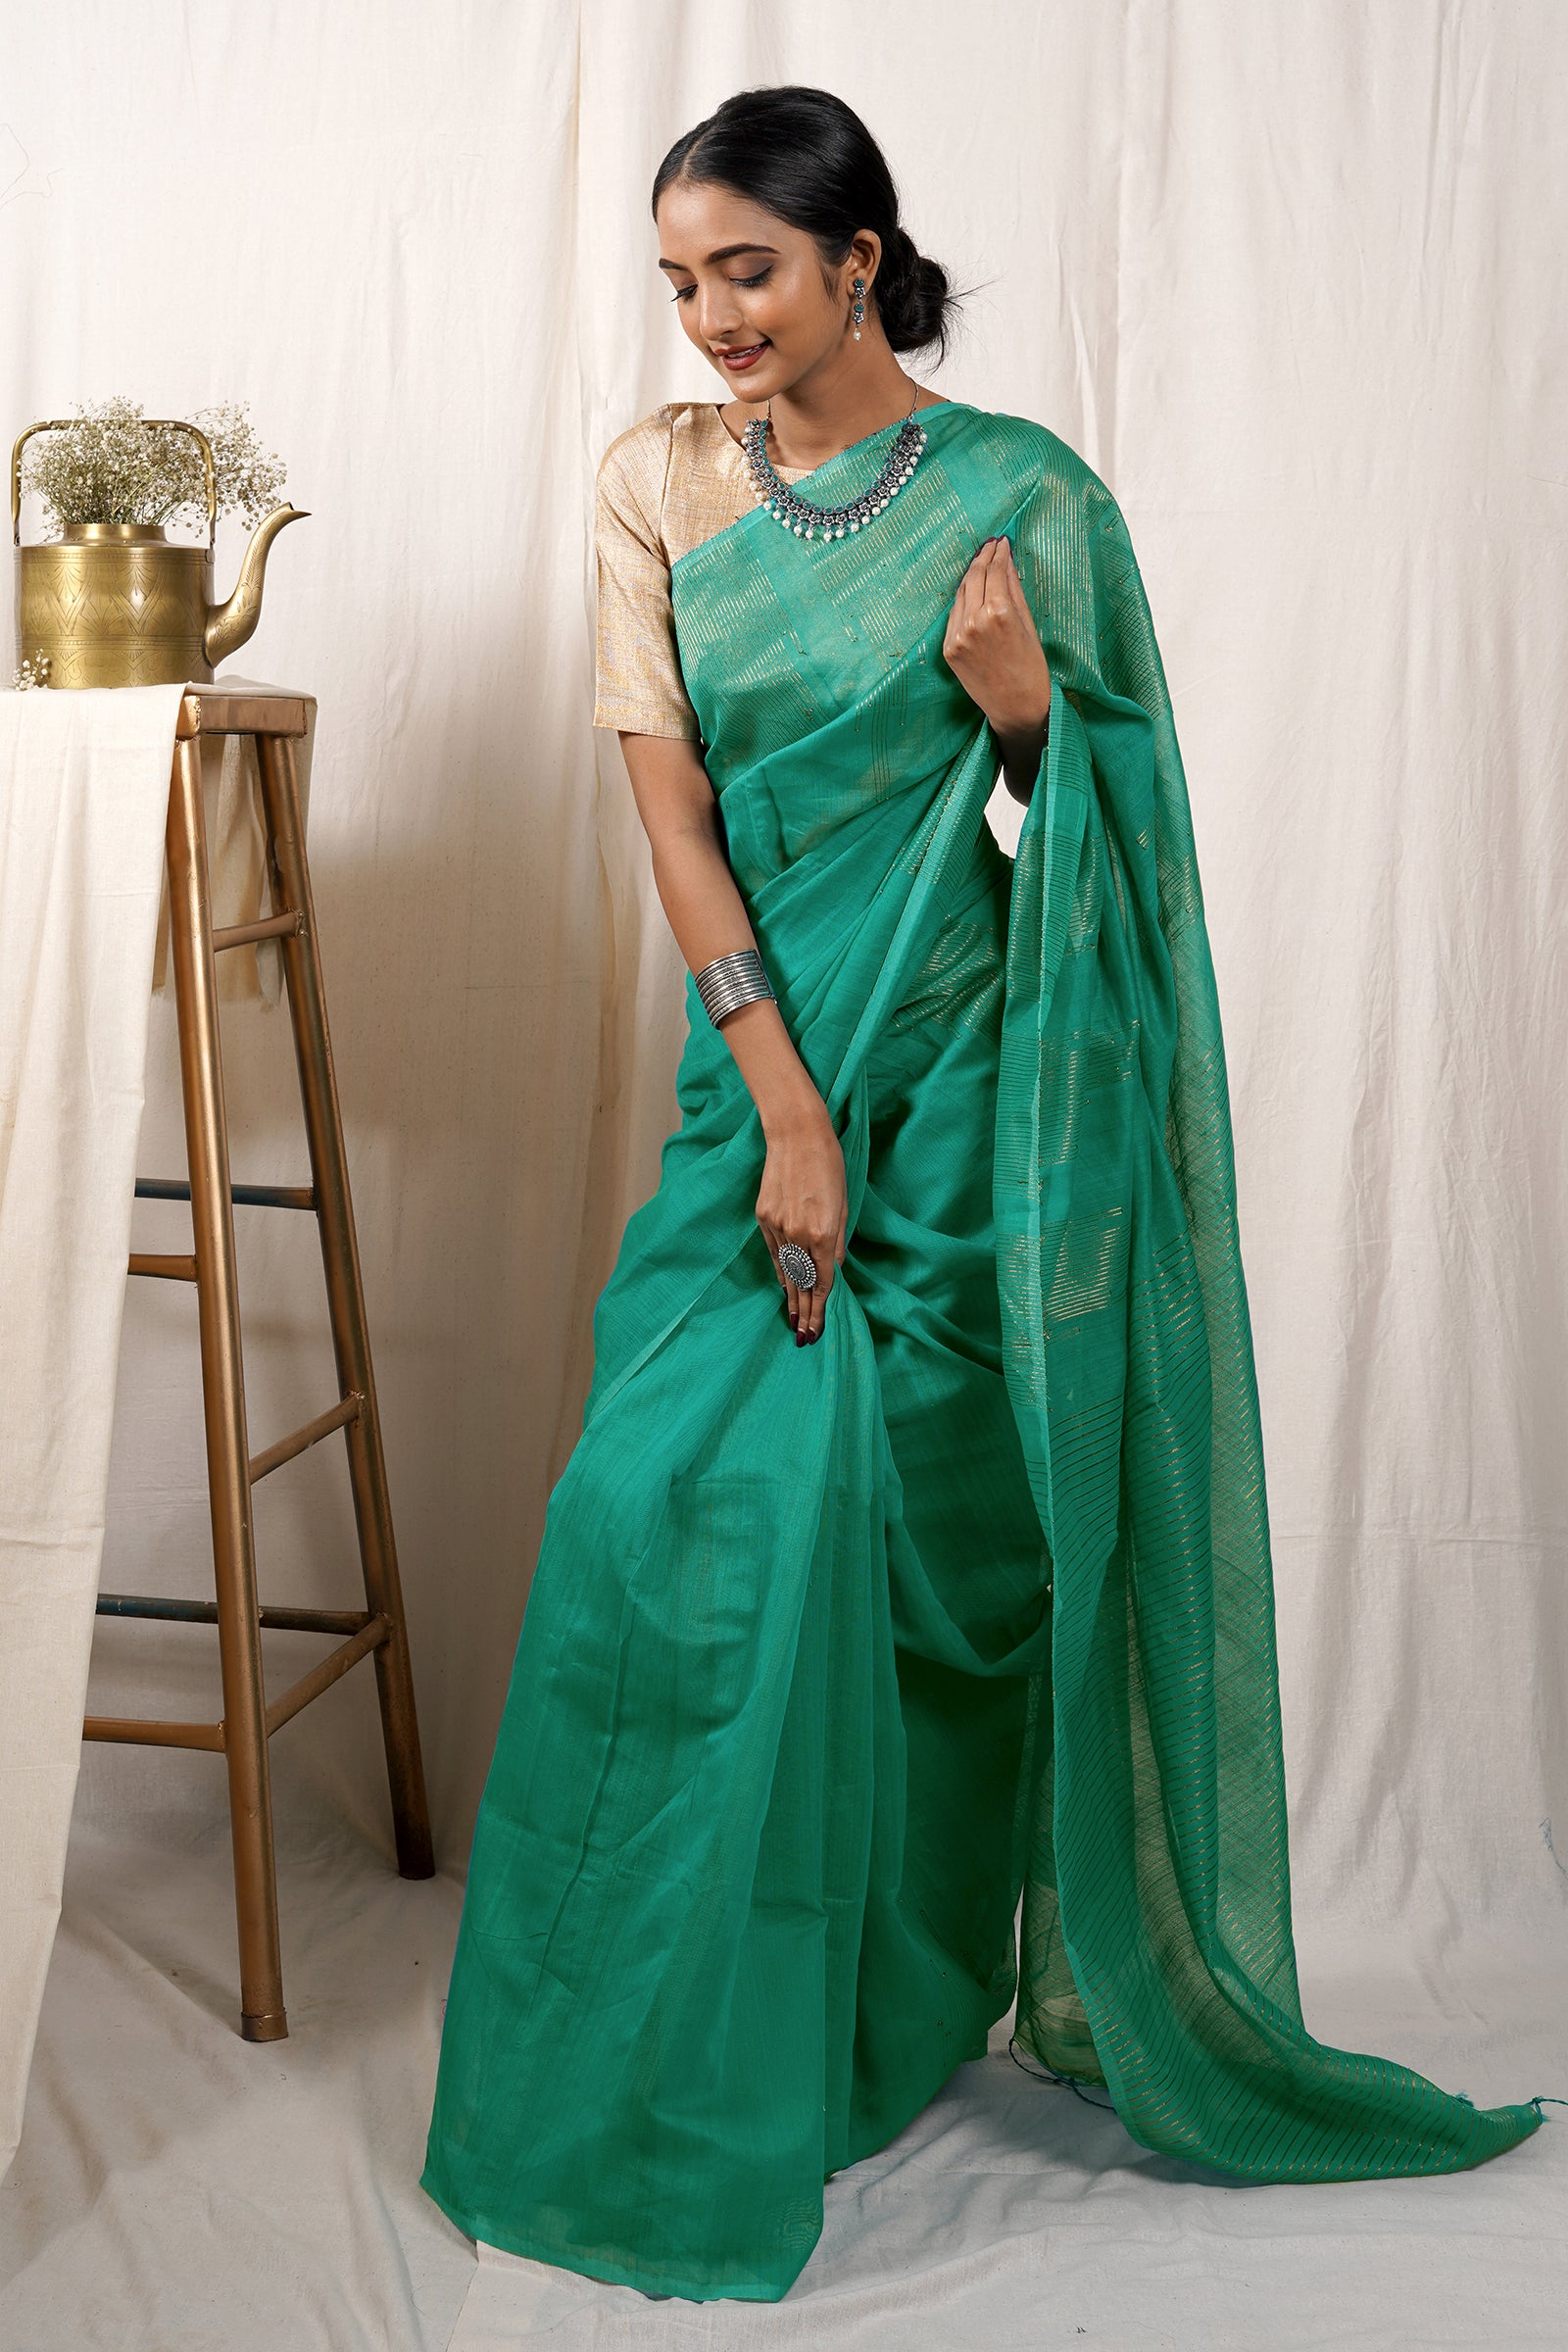 Teejh Mermaid Green Cotton Zari Silk Saree